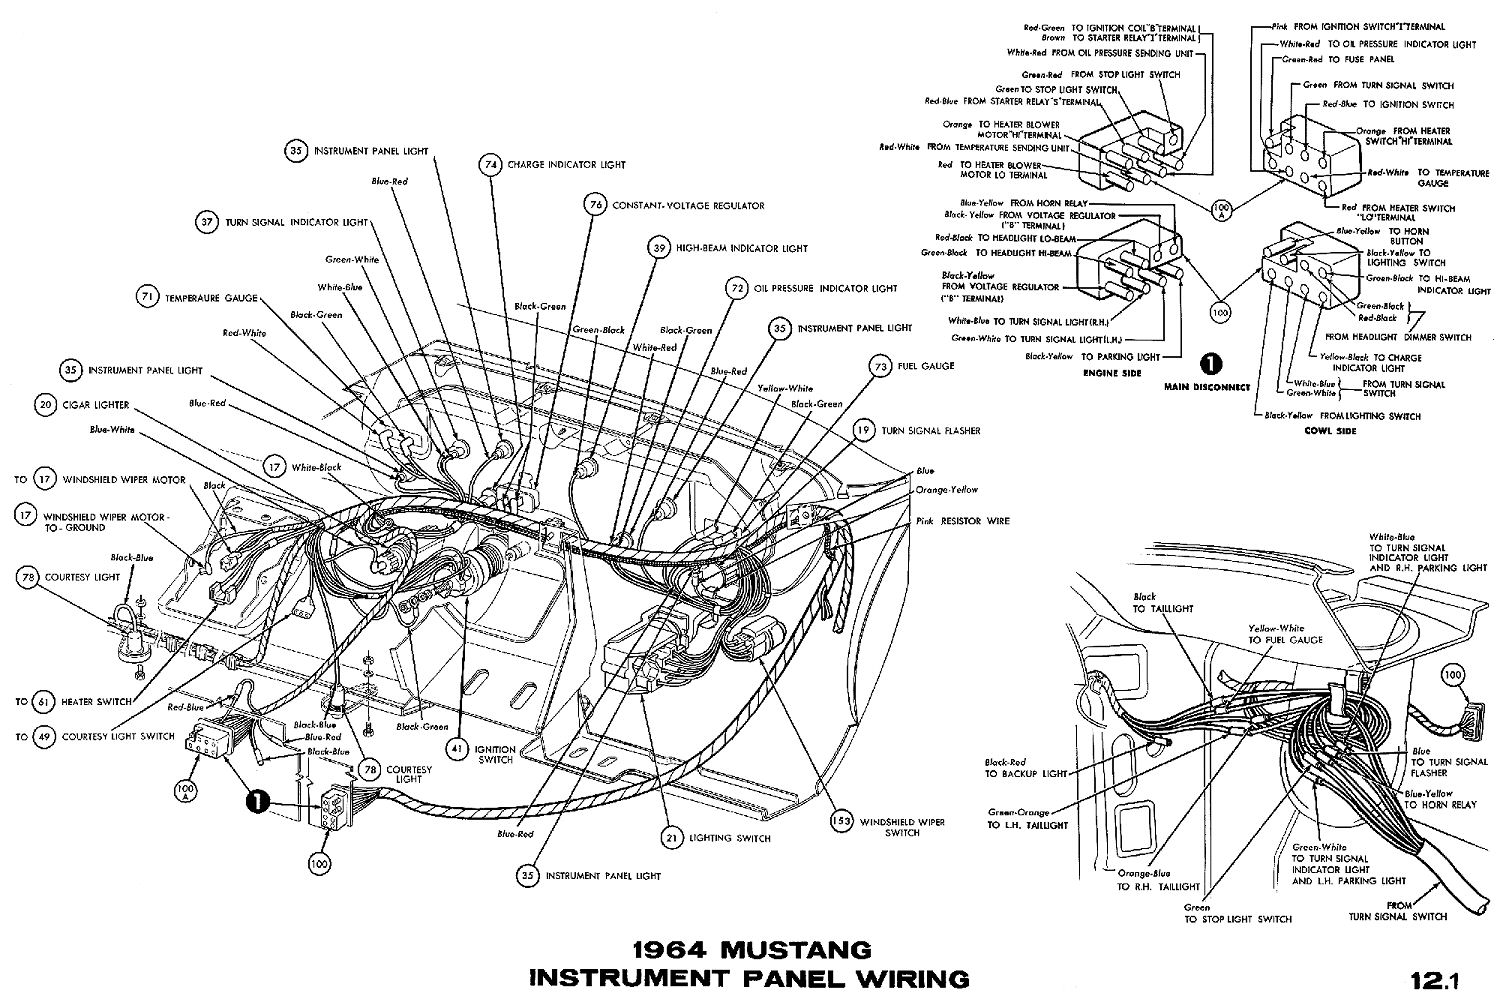 1964b 1964 mustang wiring diagrams average joe restoration 65 mustang dash wiring diagram at bayanpartner.co